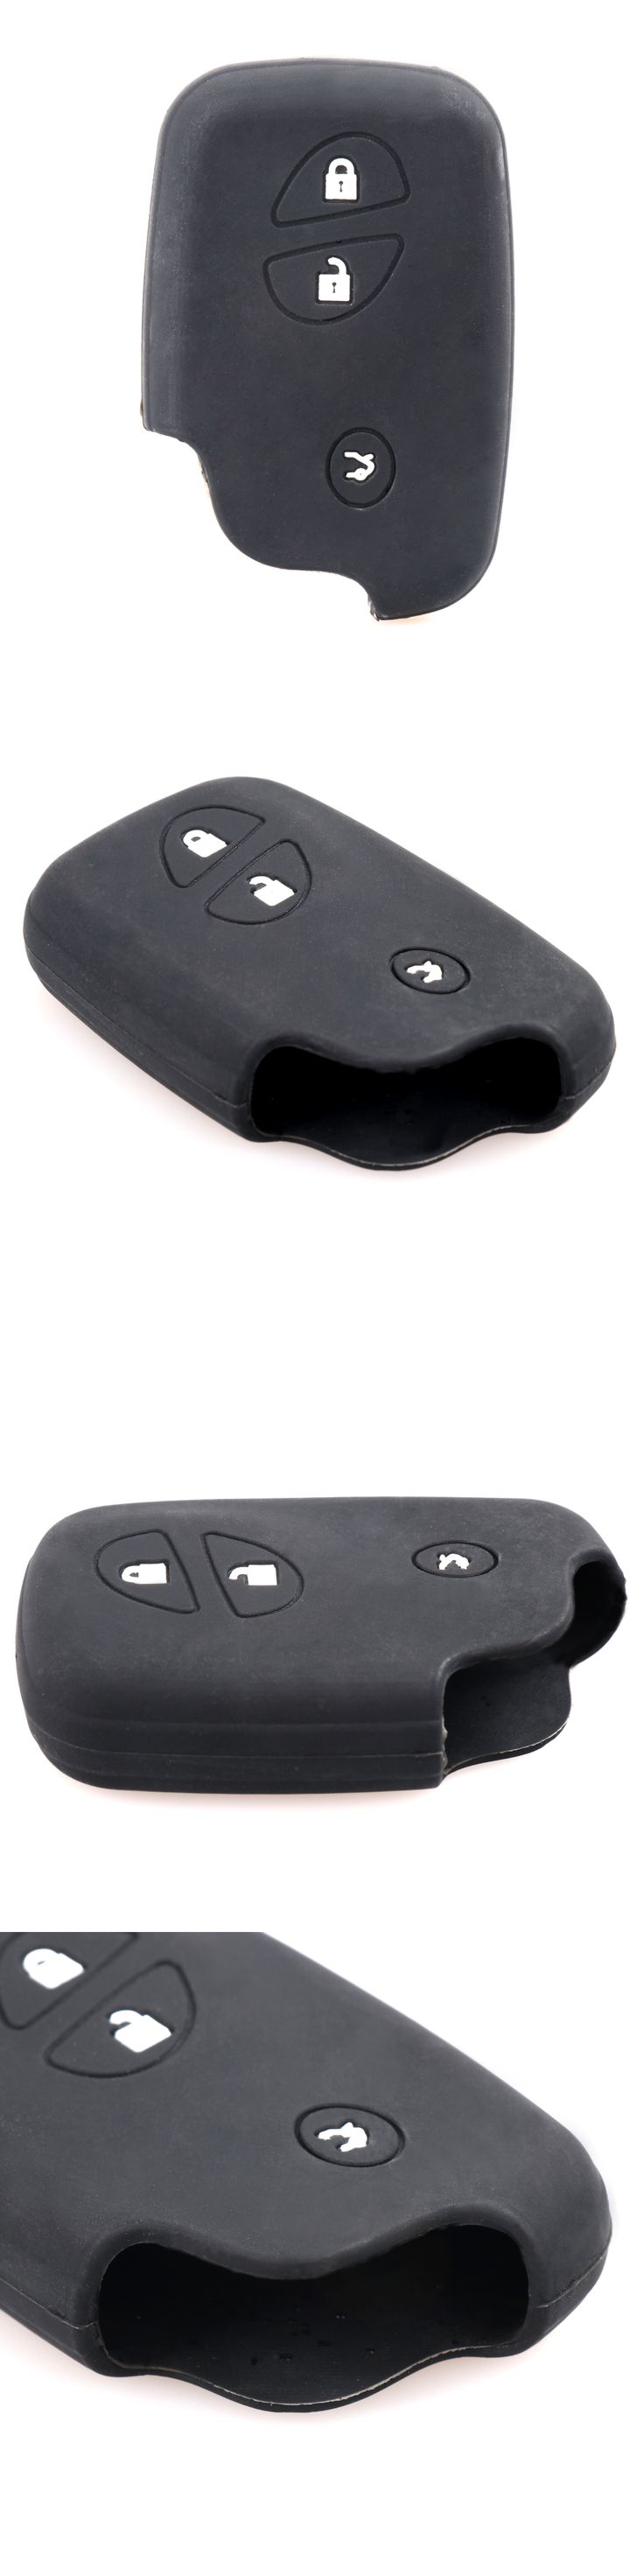 3 Buttons Silicone Car Key Shell For Lexus CT200h ES 300h IS250 GX400 RX270 RX450h RX350 LX570 Auto Key Cover Case With L0G0